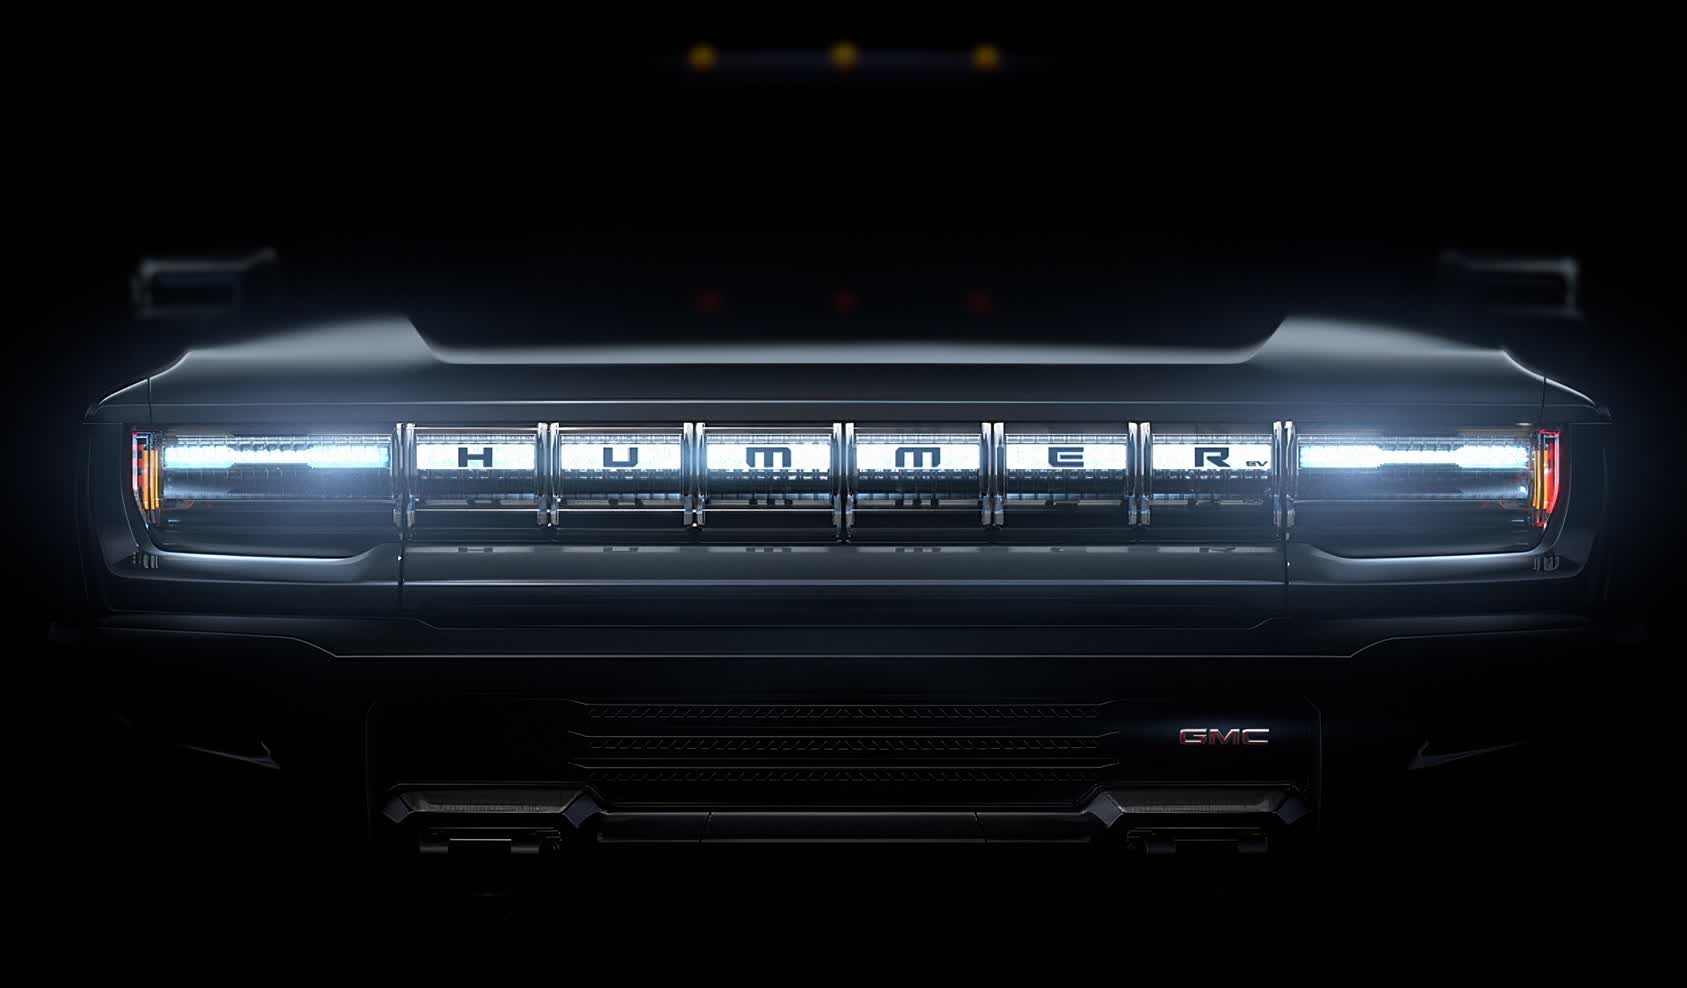 GMC's Hummer EV will be the first vehicle to use an Unreal Engine-based infotainment system